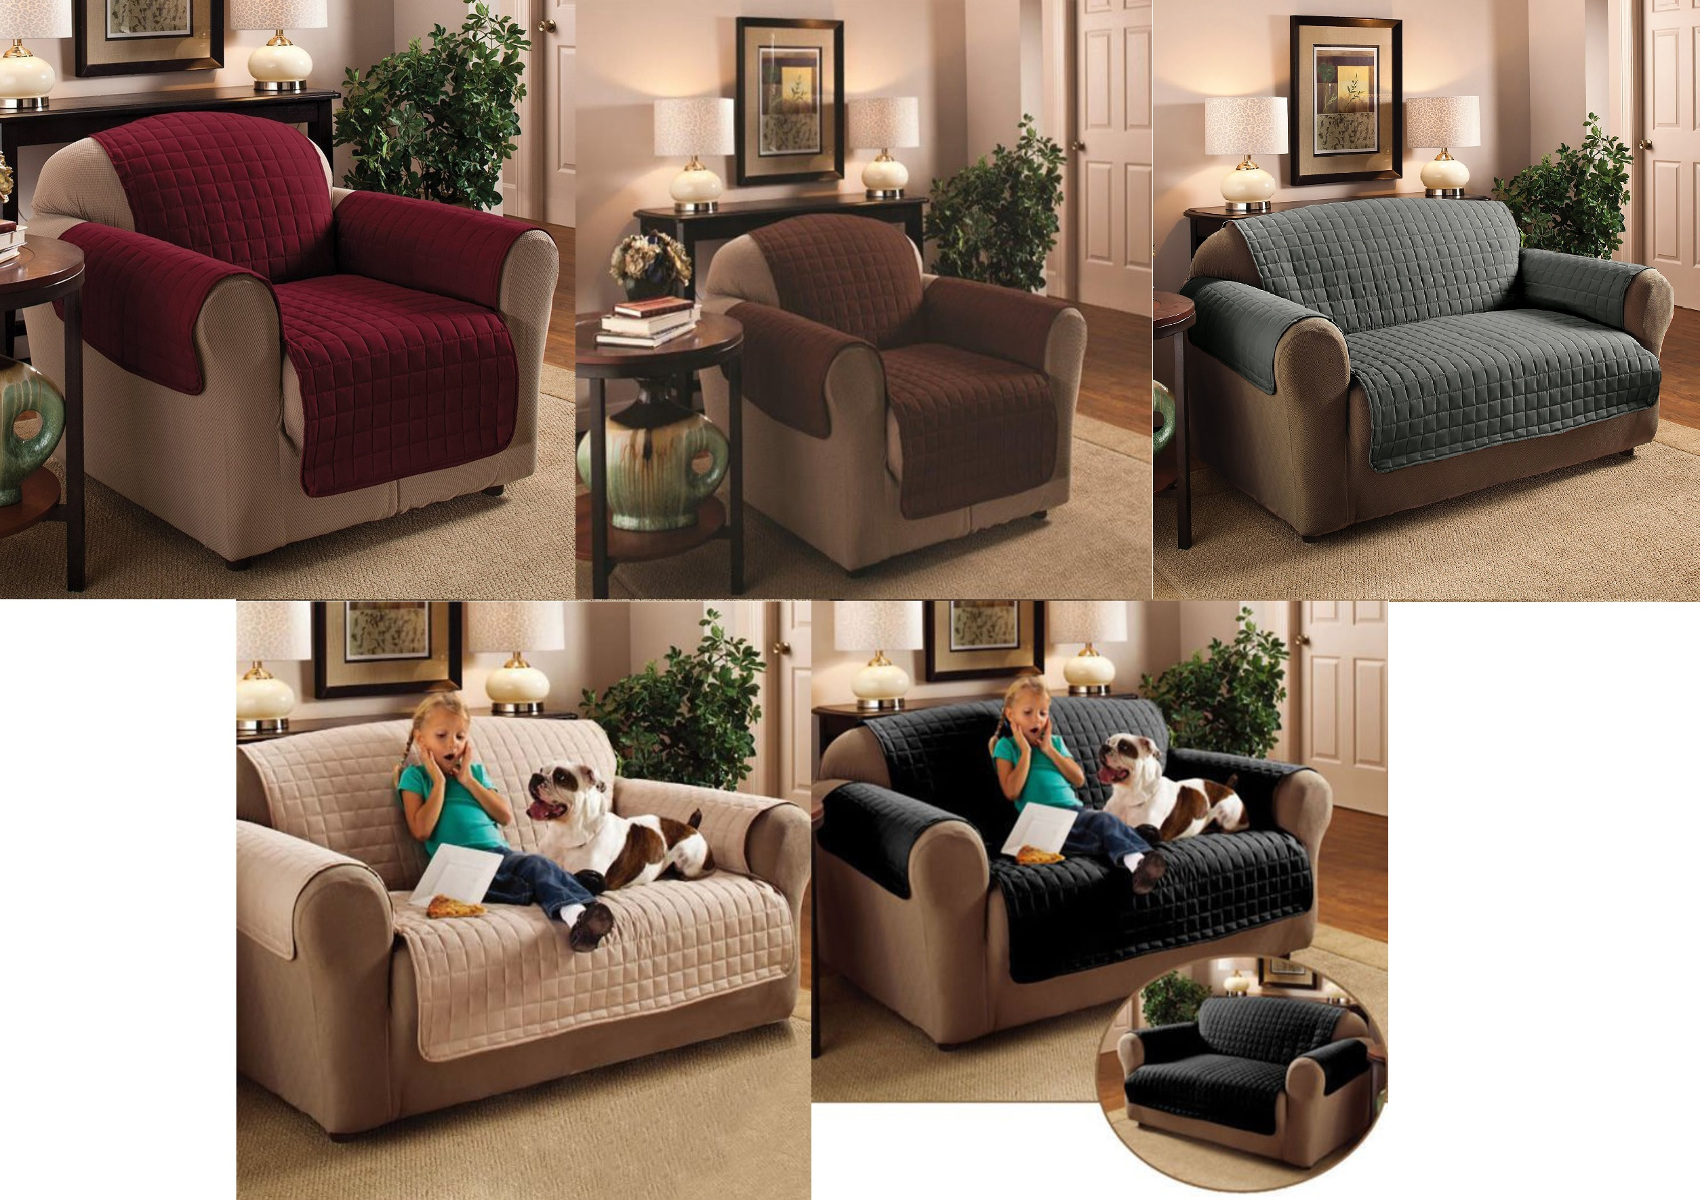 Quilted Microfibre Furniture Protector Soil Snag Resistant Sofa Cover 1 2 3  Seat